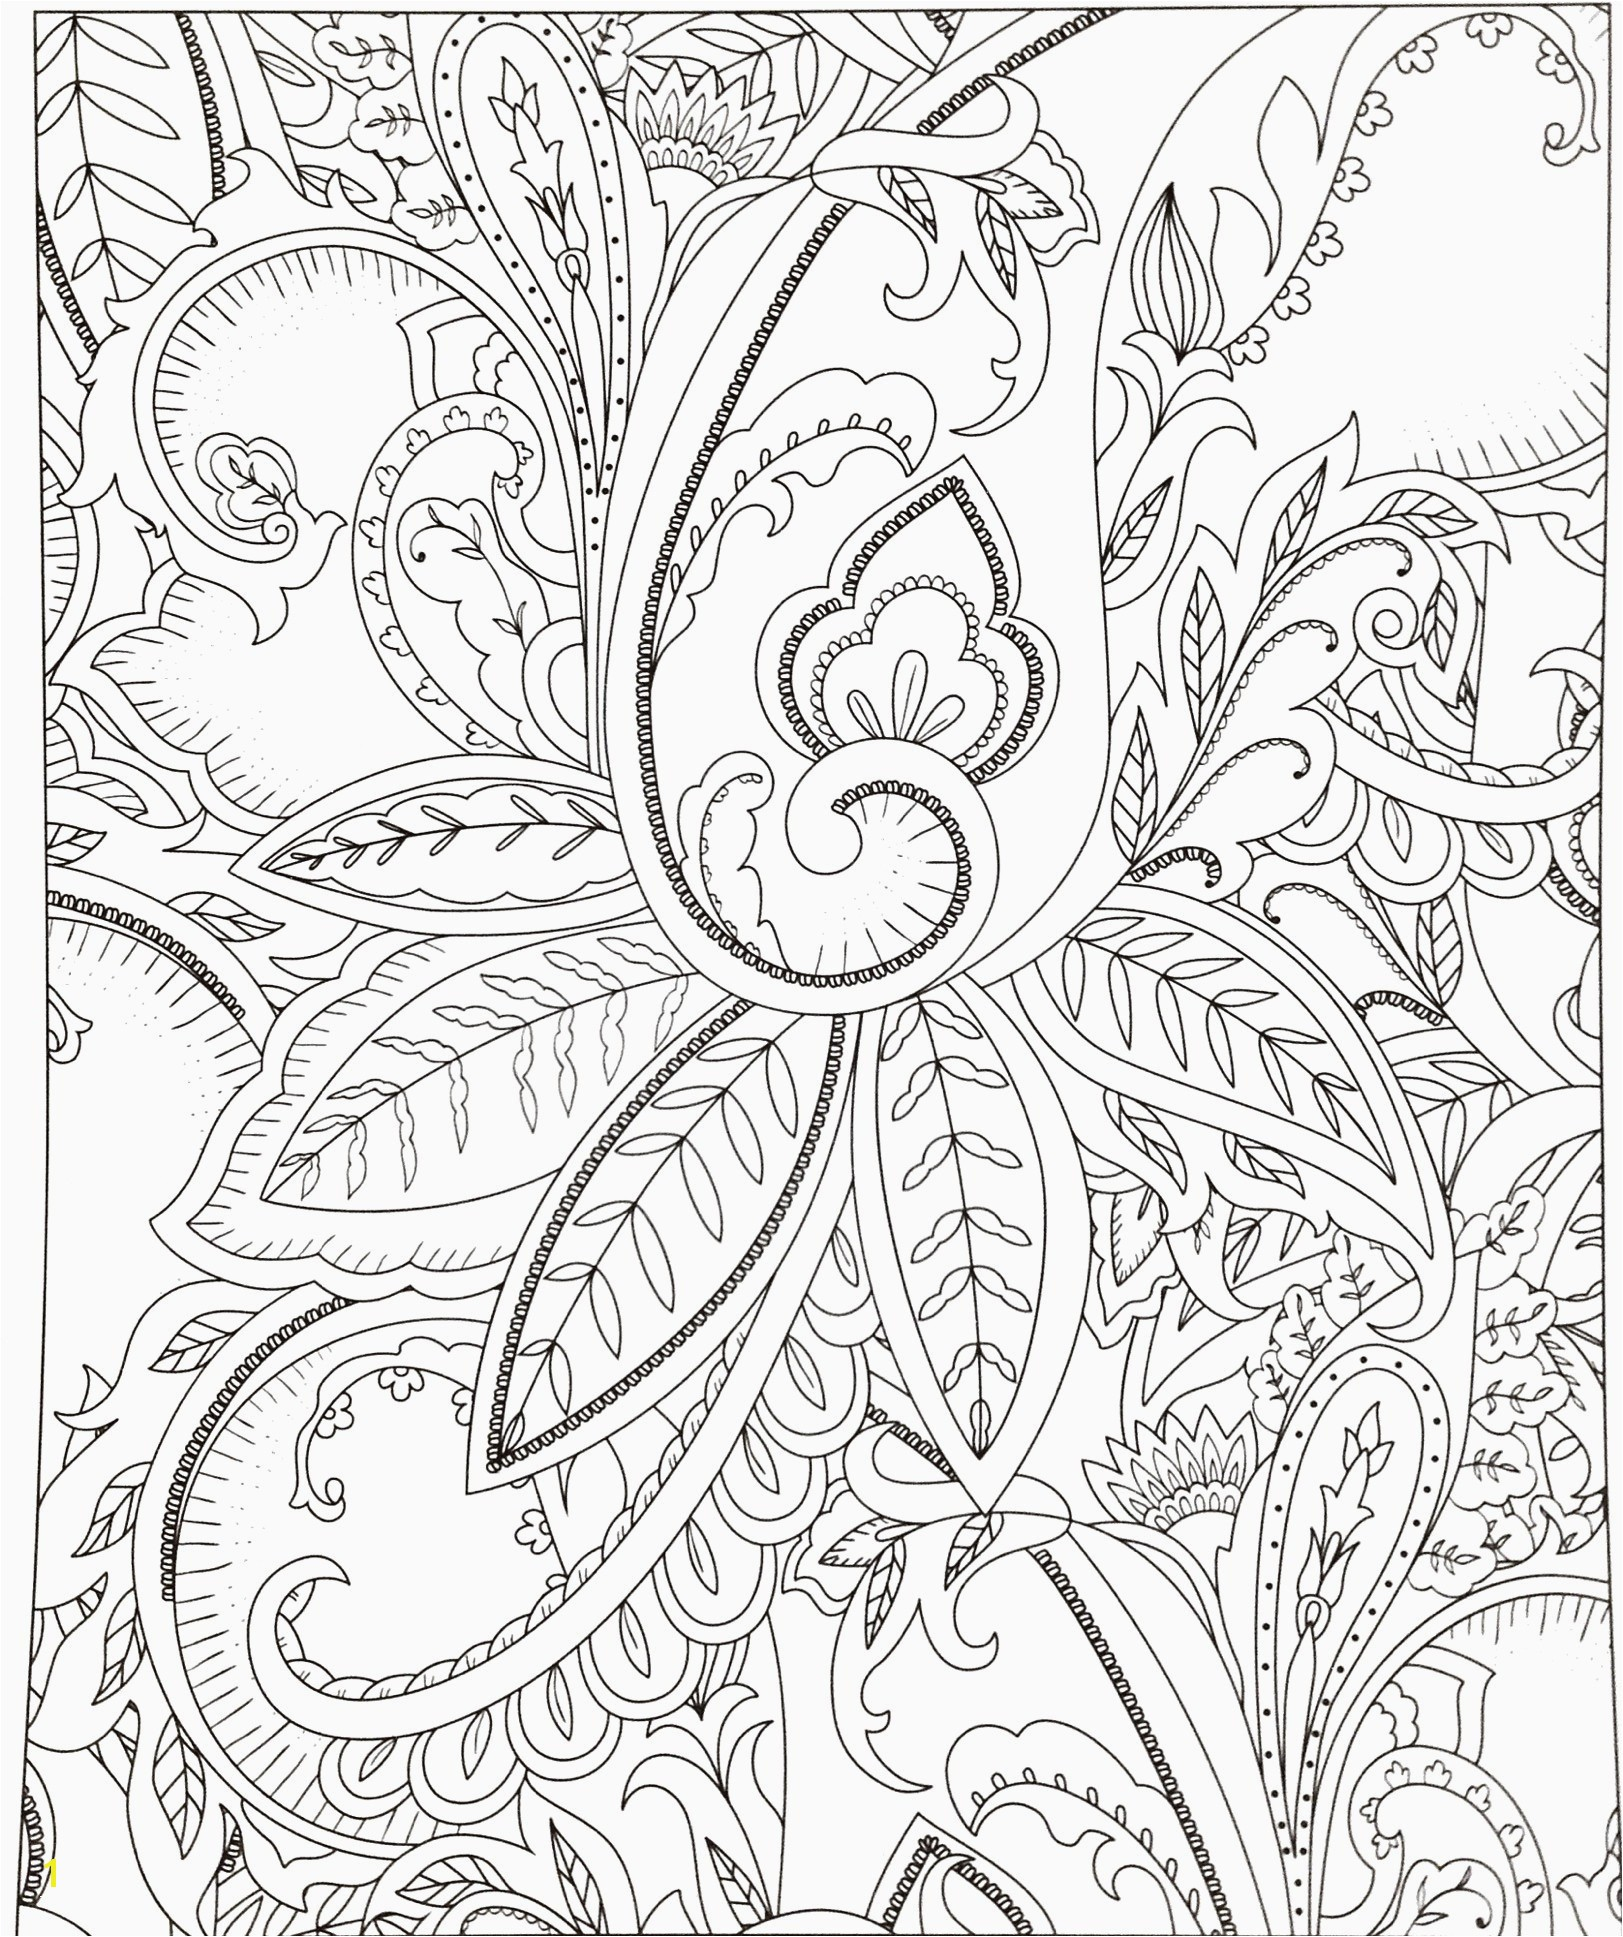 Home Coloring Pages Coloring Page Games Unique Home Coloring Pages Best Color Sheet 0d